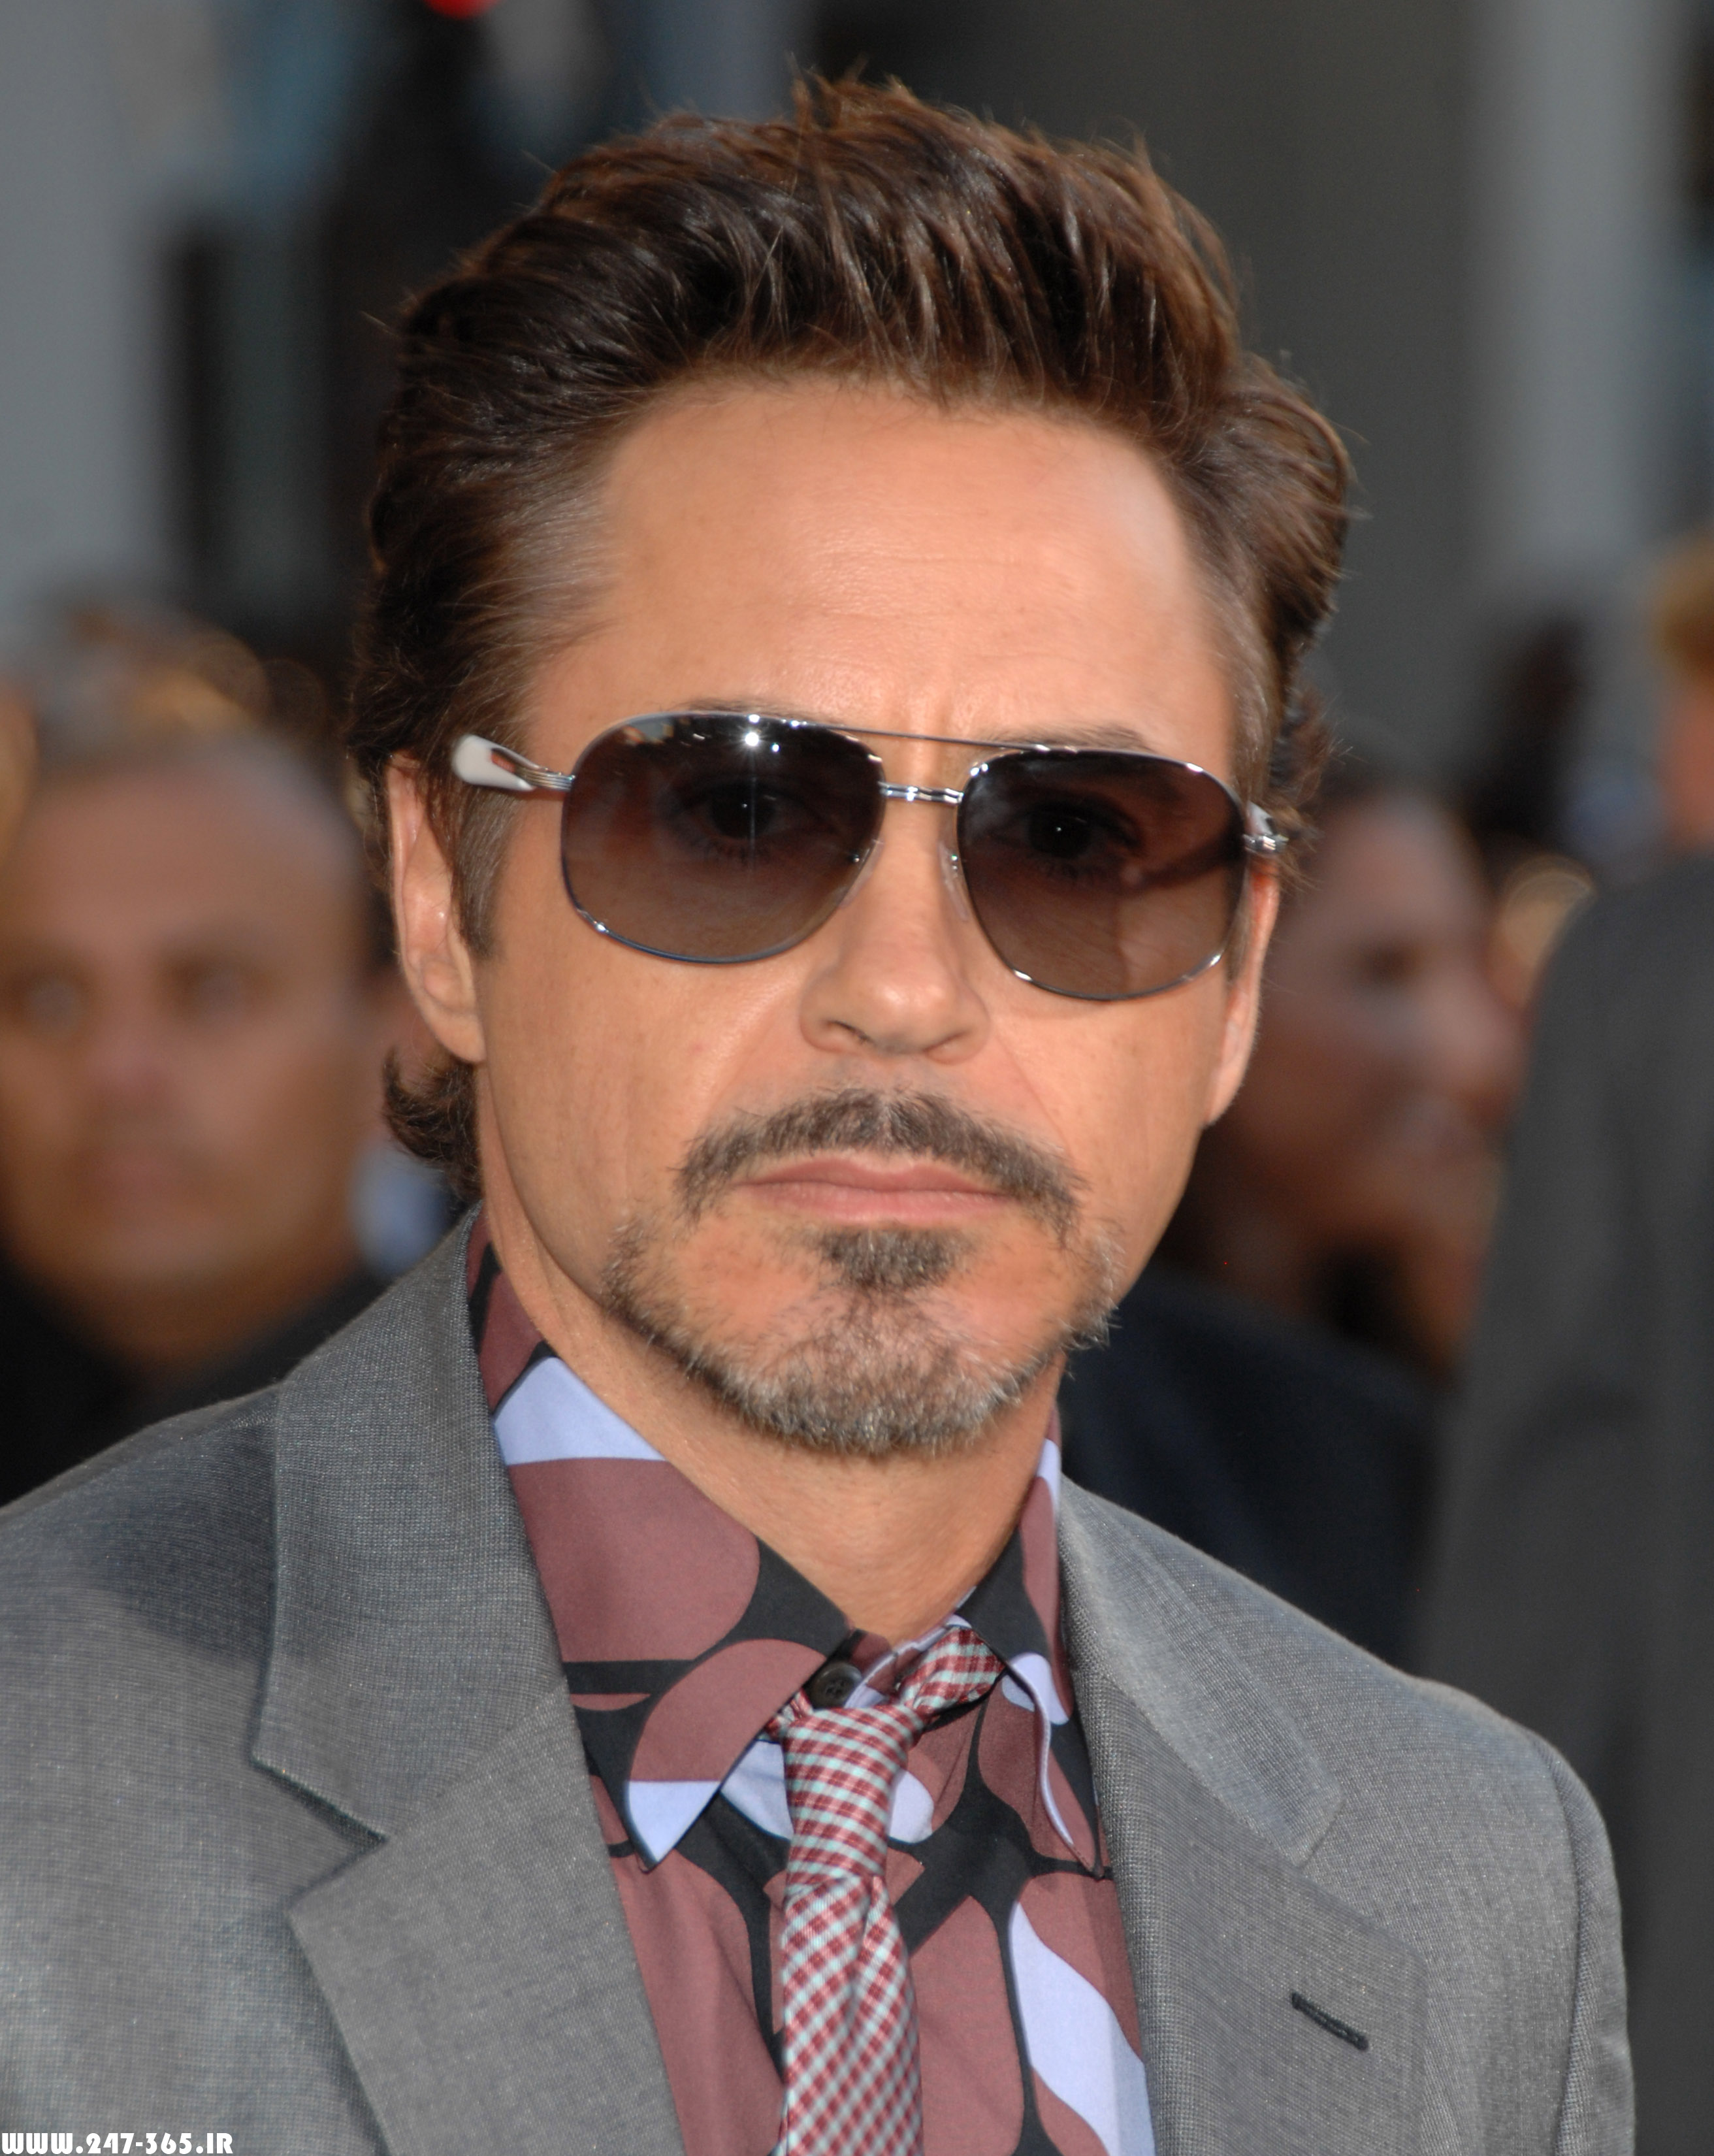 http://dl.247-365.ir/pic/celebrity/robert_downey_jr_2/Robert_Downey_Jr_2_06.jpg